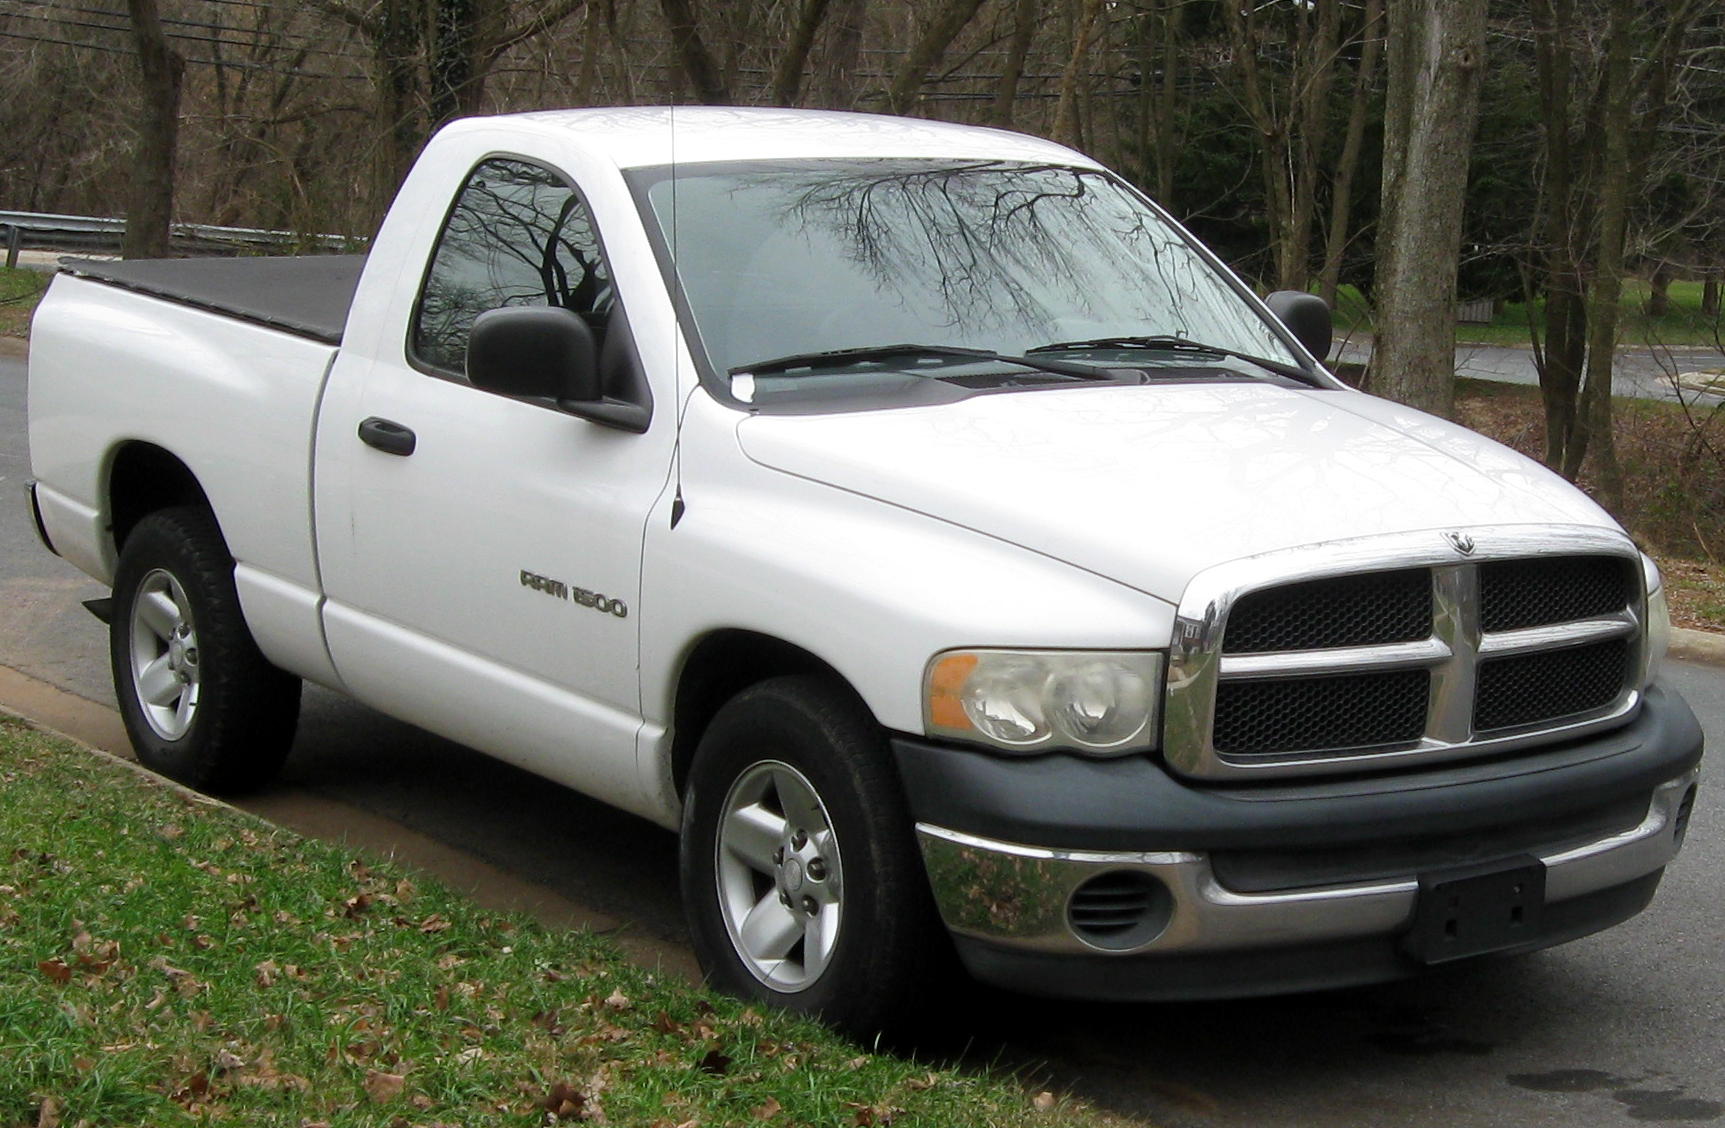 be on the lookout stolen white 2002 dodge pu with nevada plates found - White Dodge Truck 2005